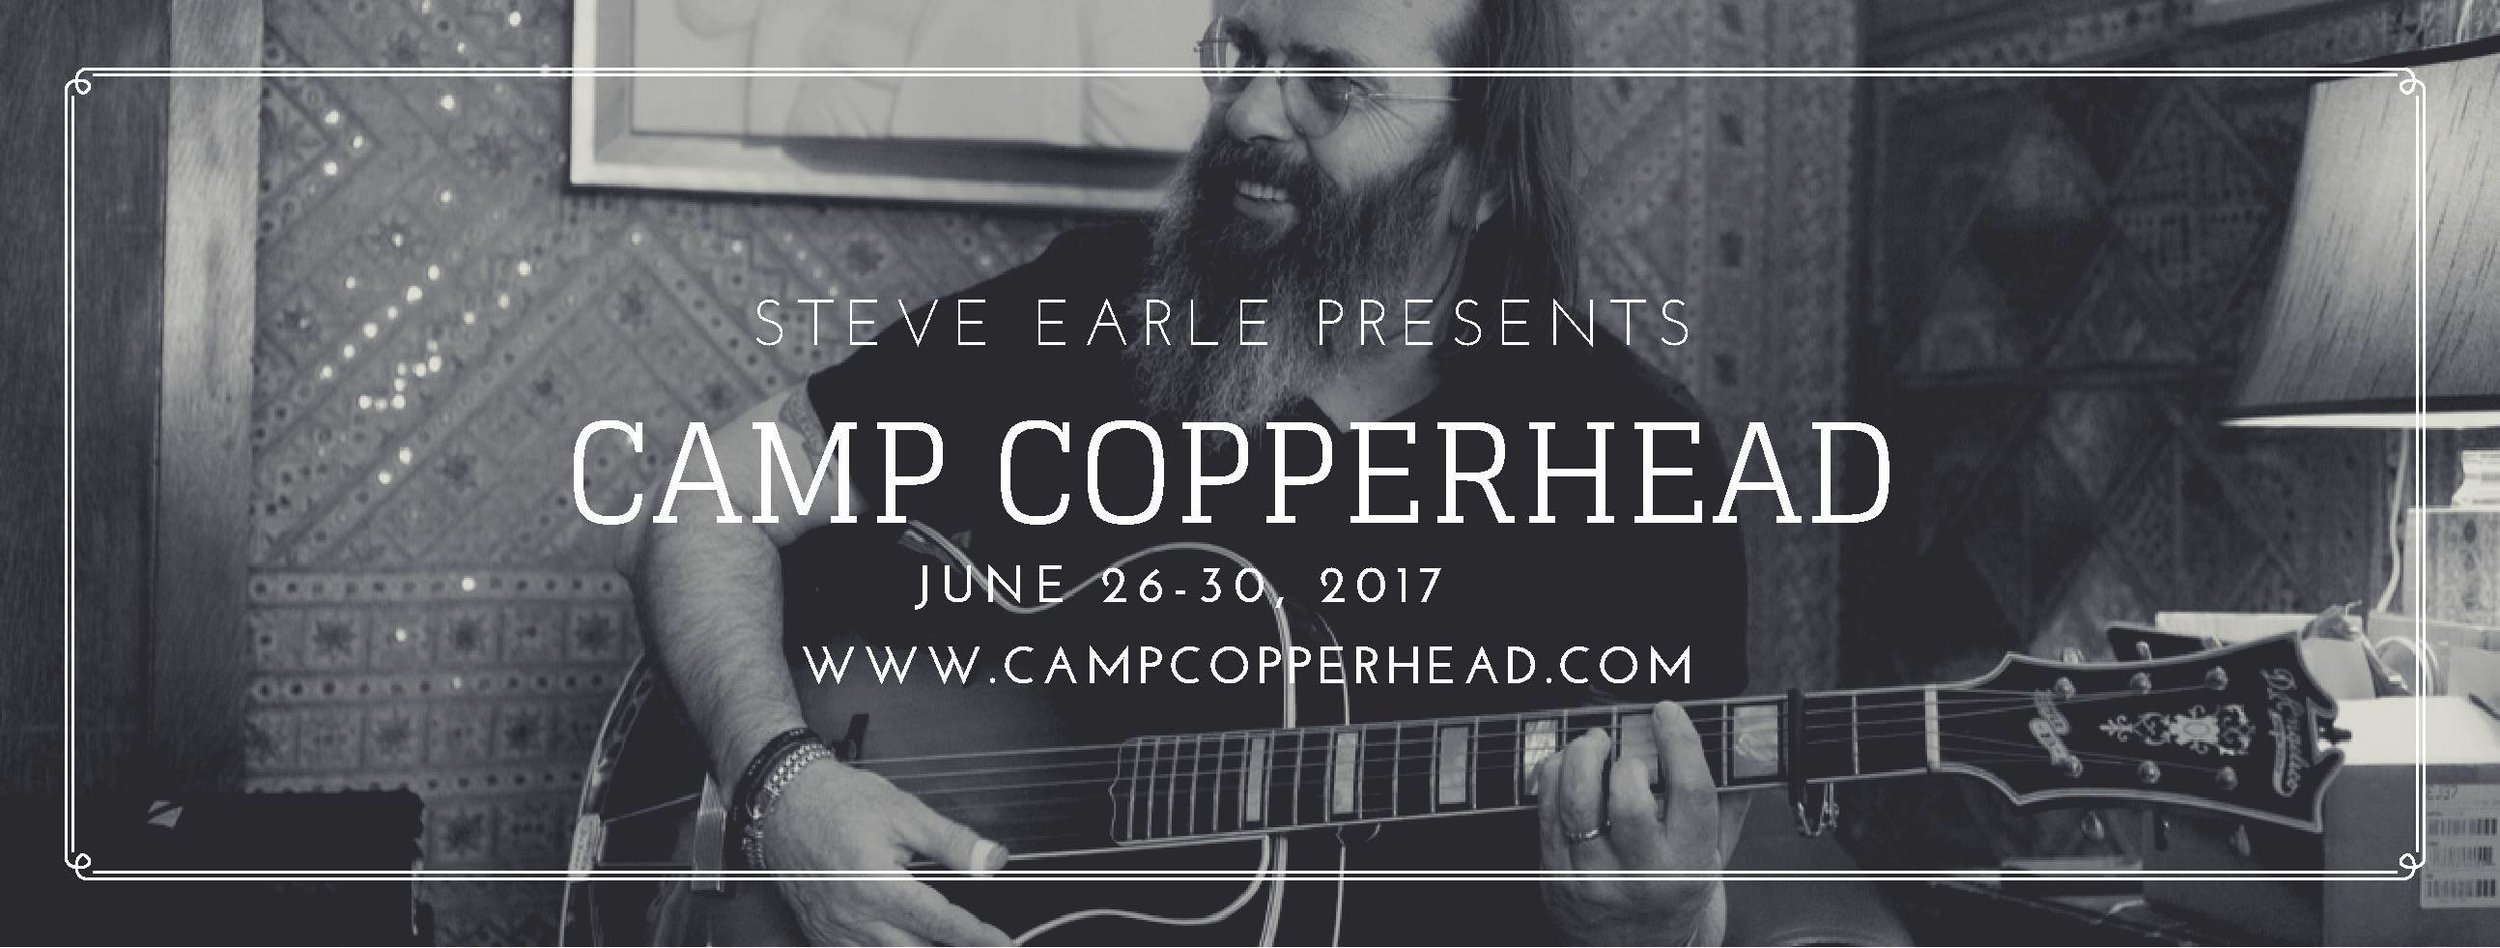 Enter at the email below to win a ticket to  Steve Earle's Camp Copperhead at Full Moon Resort in Big Indian, NY June 26-30, 2017. Three winners will be chosen to receive a complimentary ticket for four days and nights of singing and songwriting, led by Steve, with special guests Jackie Greene and Dar Williams.  To enter, send a video, mp3, or lyrics of one of your original songs to  campcopperheadcontest@gmail.com . Please be sure to include your name, age, and where you live. Entries will be considered between May 24th - June 5th, 2017.  The ticket includes all camp activities, performances, lodging in a shared room with one roommate, a shared-hall bath and all meals.  ***Transportation is NOT included. Participants must be 18+ years of age and have their own travel accommodations to and from the camp